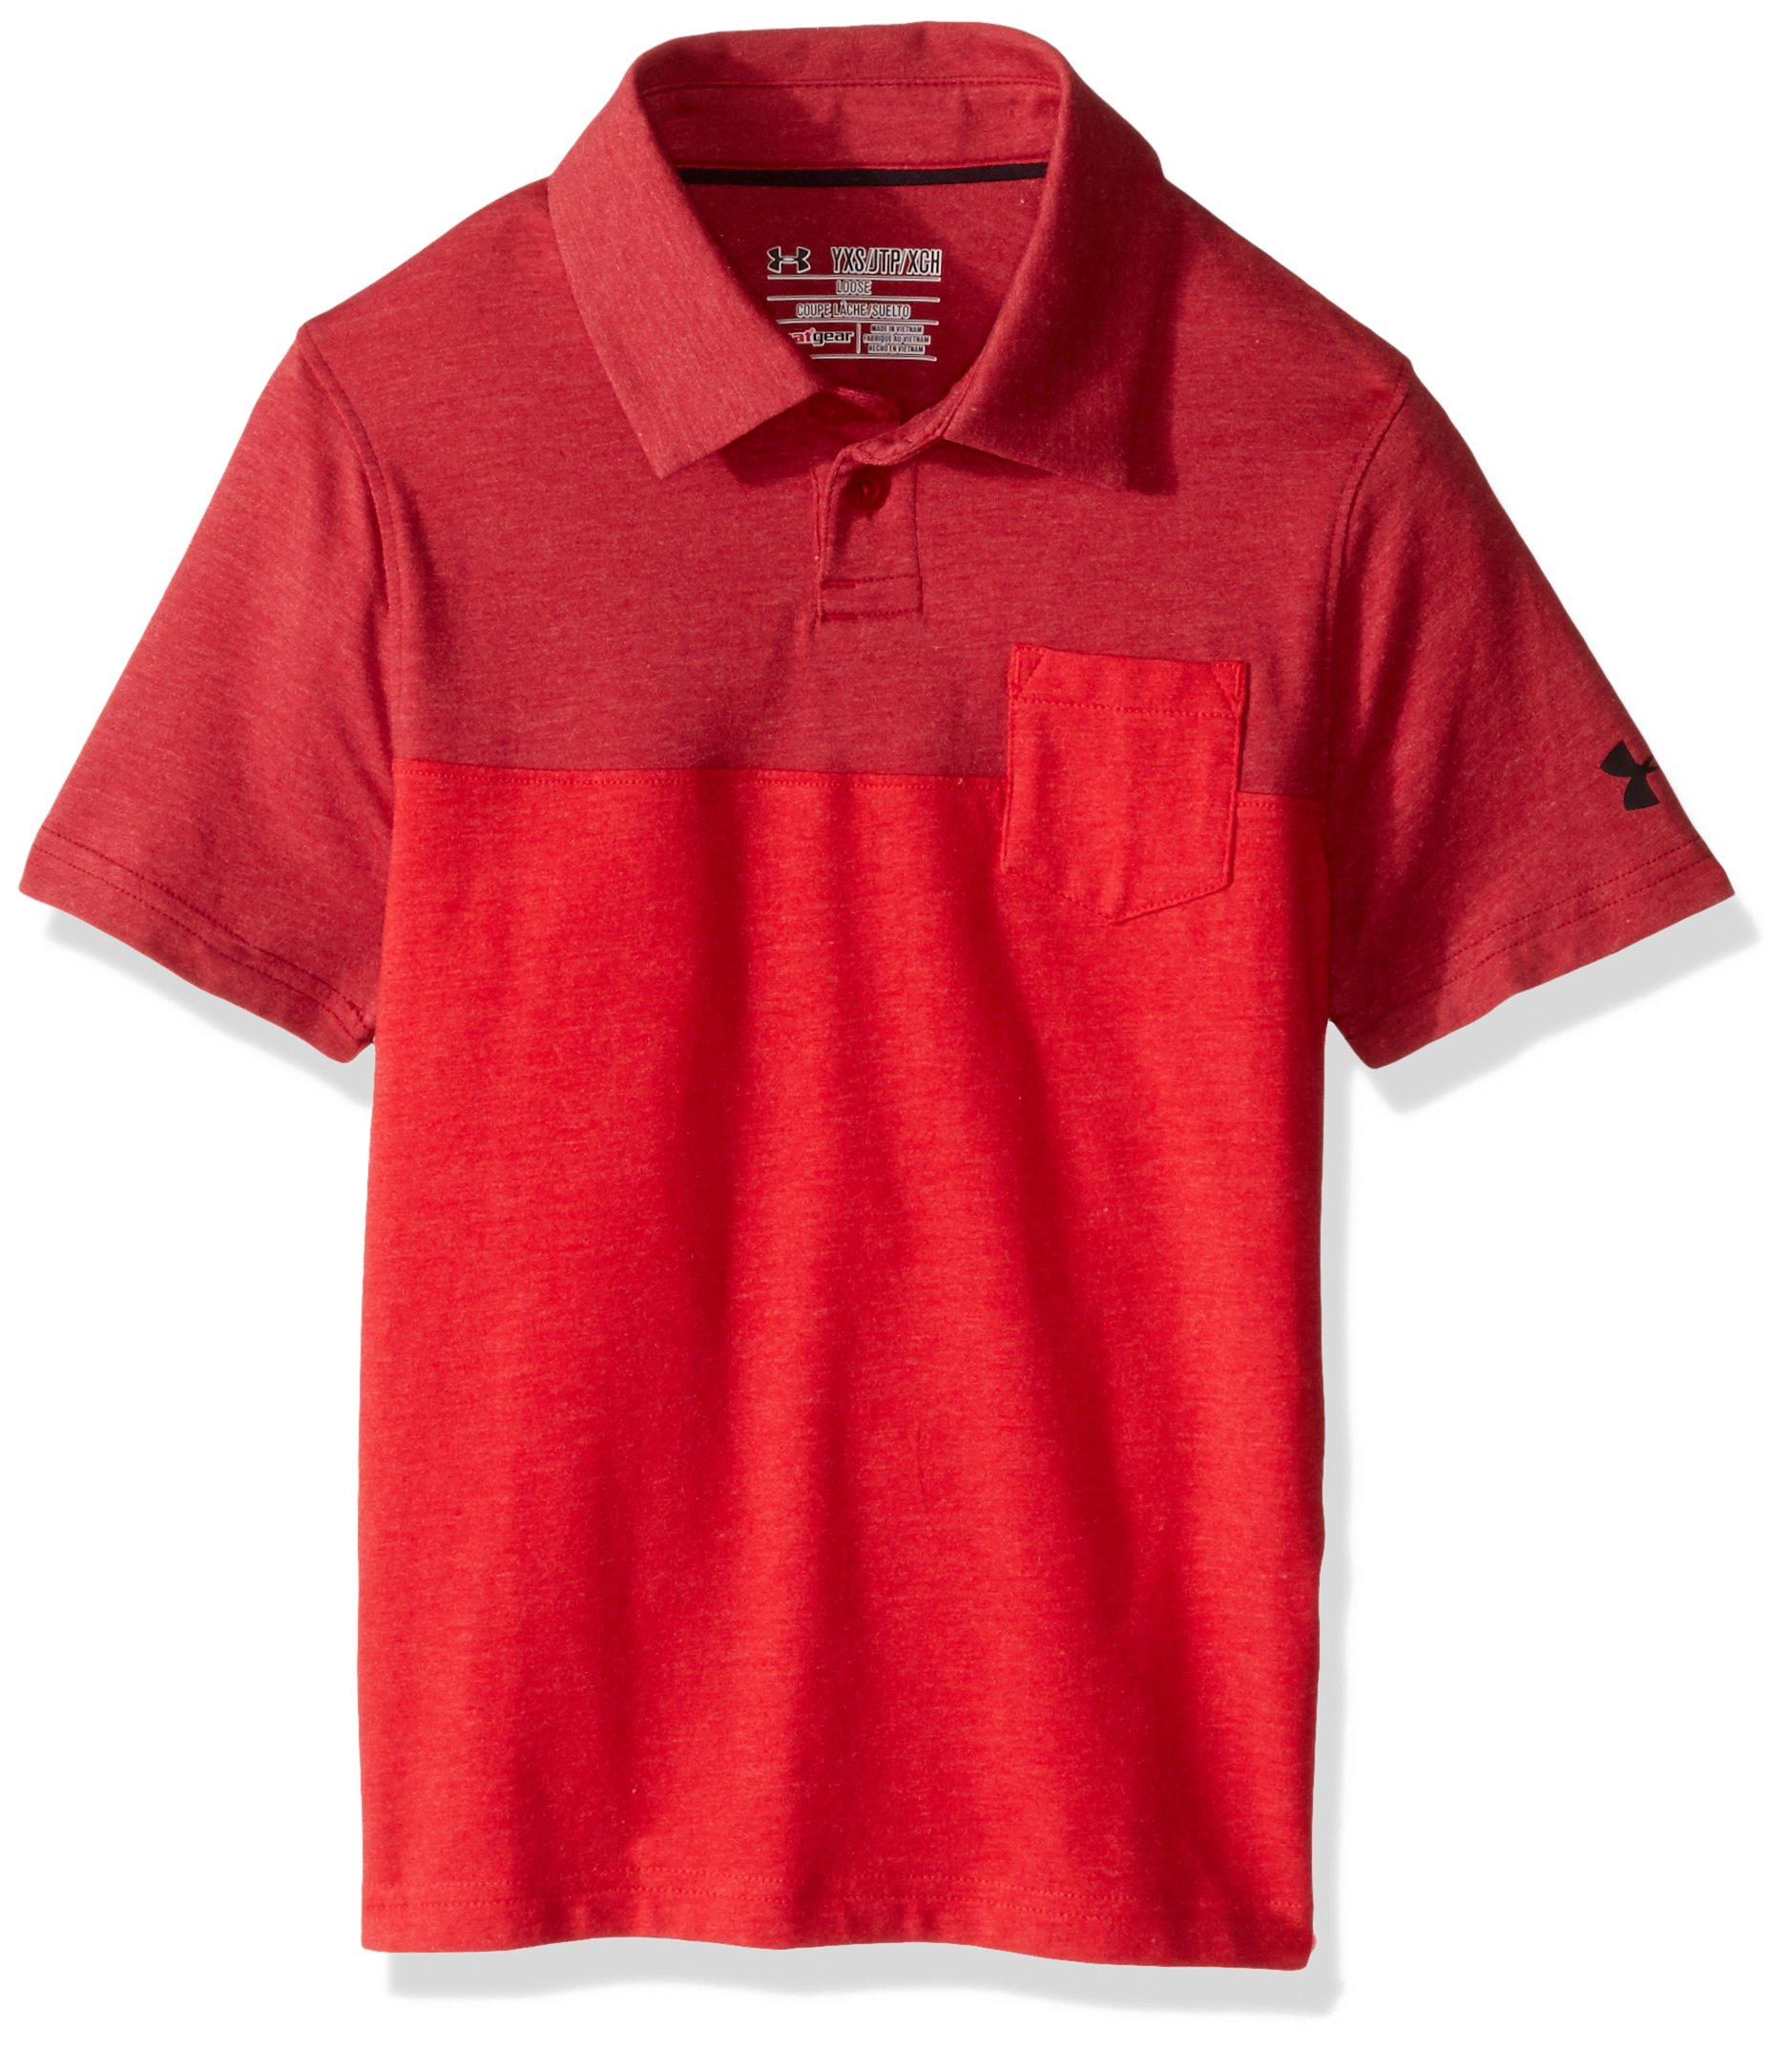 Under Armour Boys' Charged Cotton Blocked Polo, Red (600)/Black, Youth Medium by Under Armour